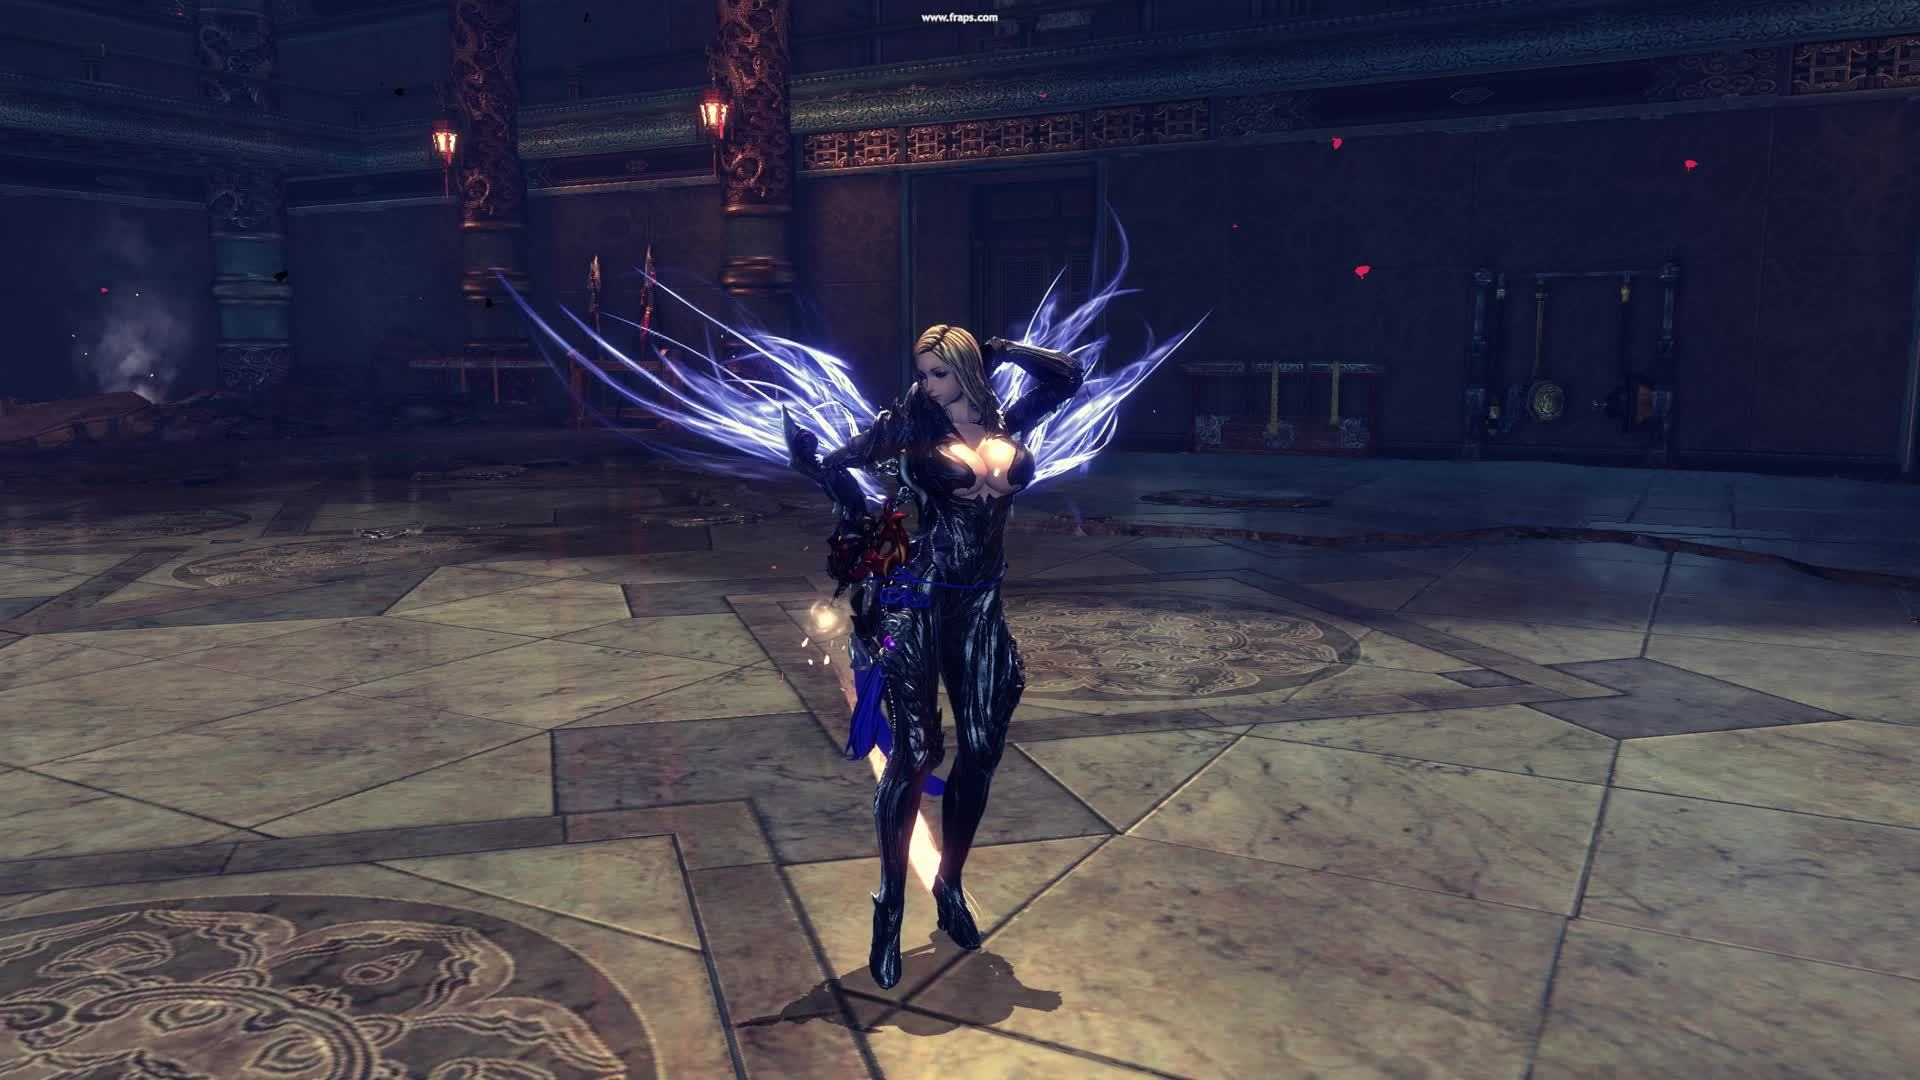 bladeandsoul, Soulburn bugged out, so I thought I'd share some photos. (reddit) GIFs